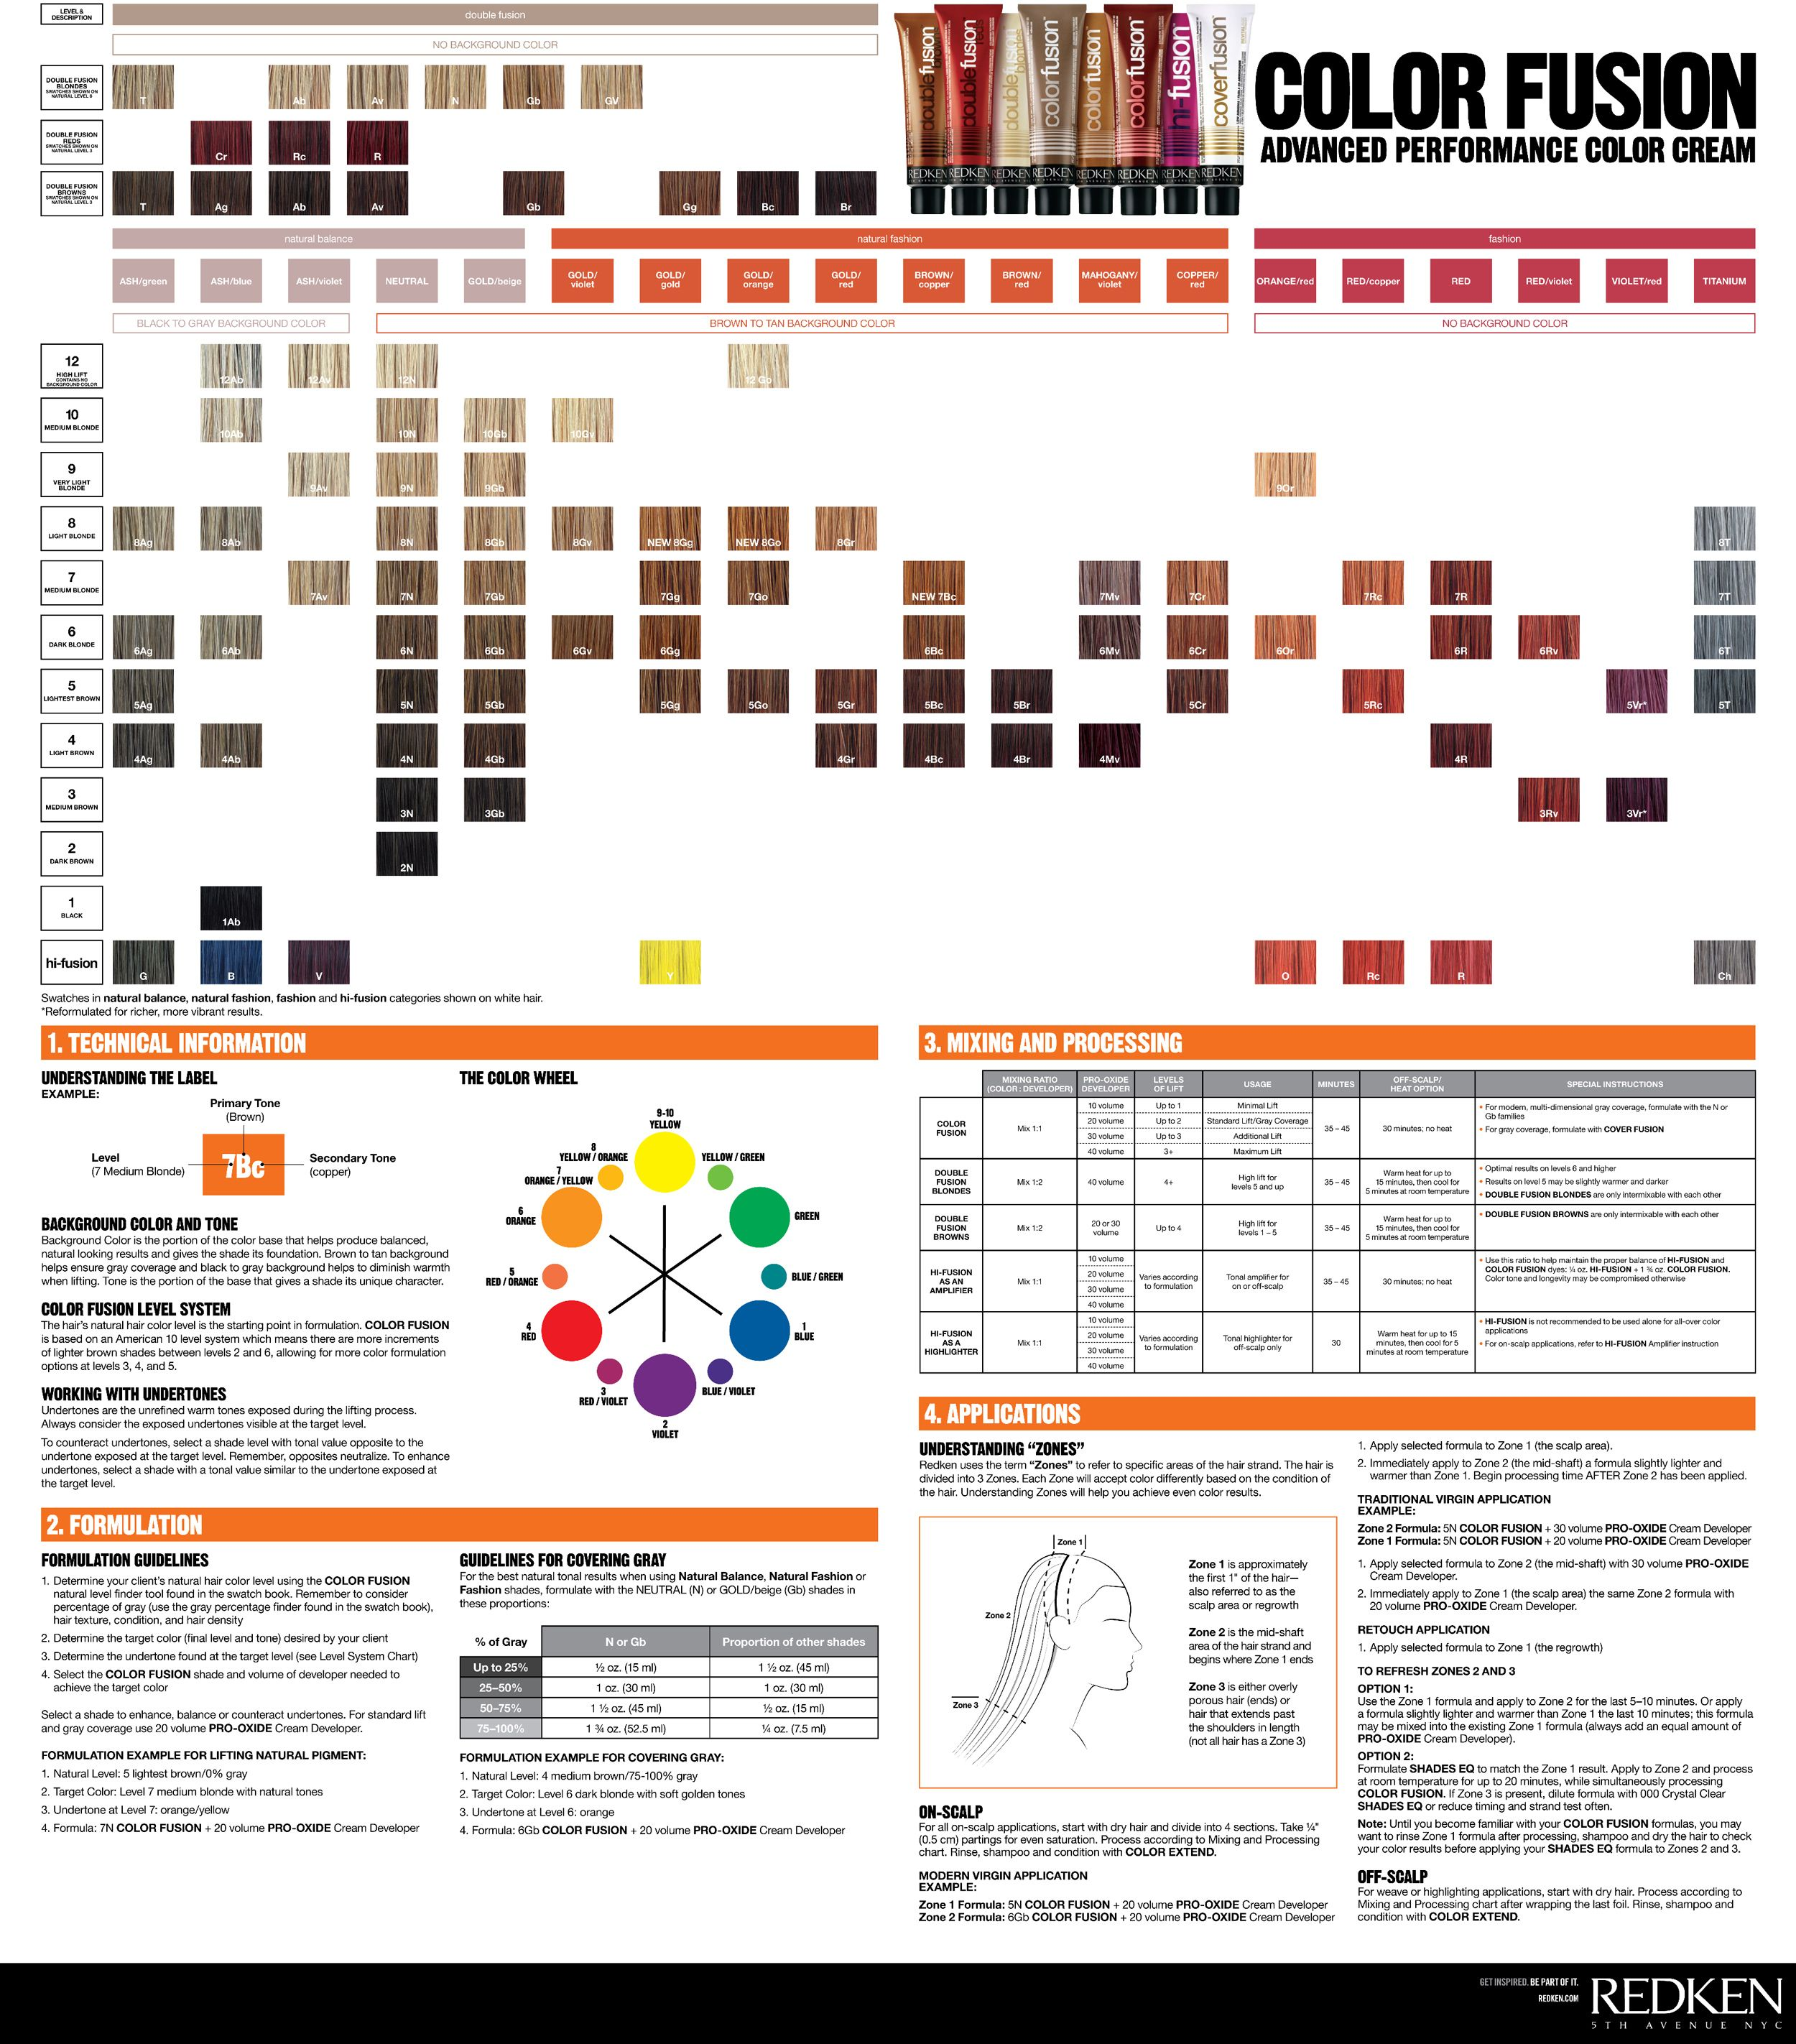 Disclosed Aveda Hair Color Conversion Chart Redken Swatch Book Fusion Hair Color Chart Redk In 2020 Redken Hair Color Chart Redken Hair Color Redken Color Fusion Chart